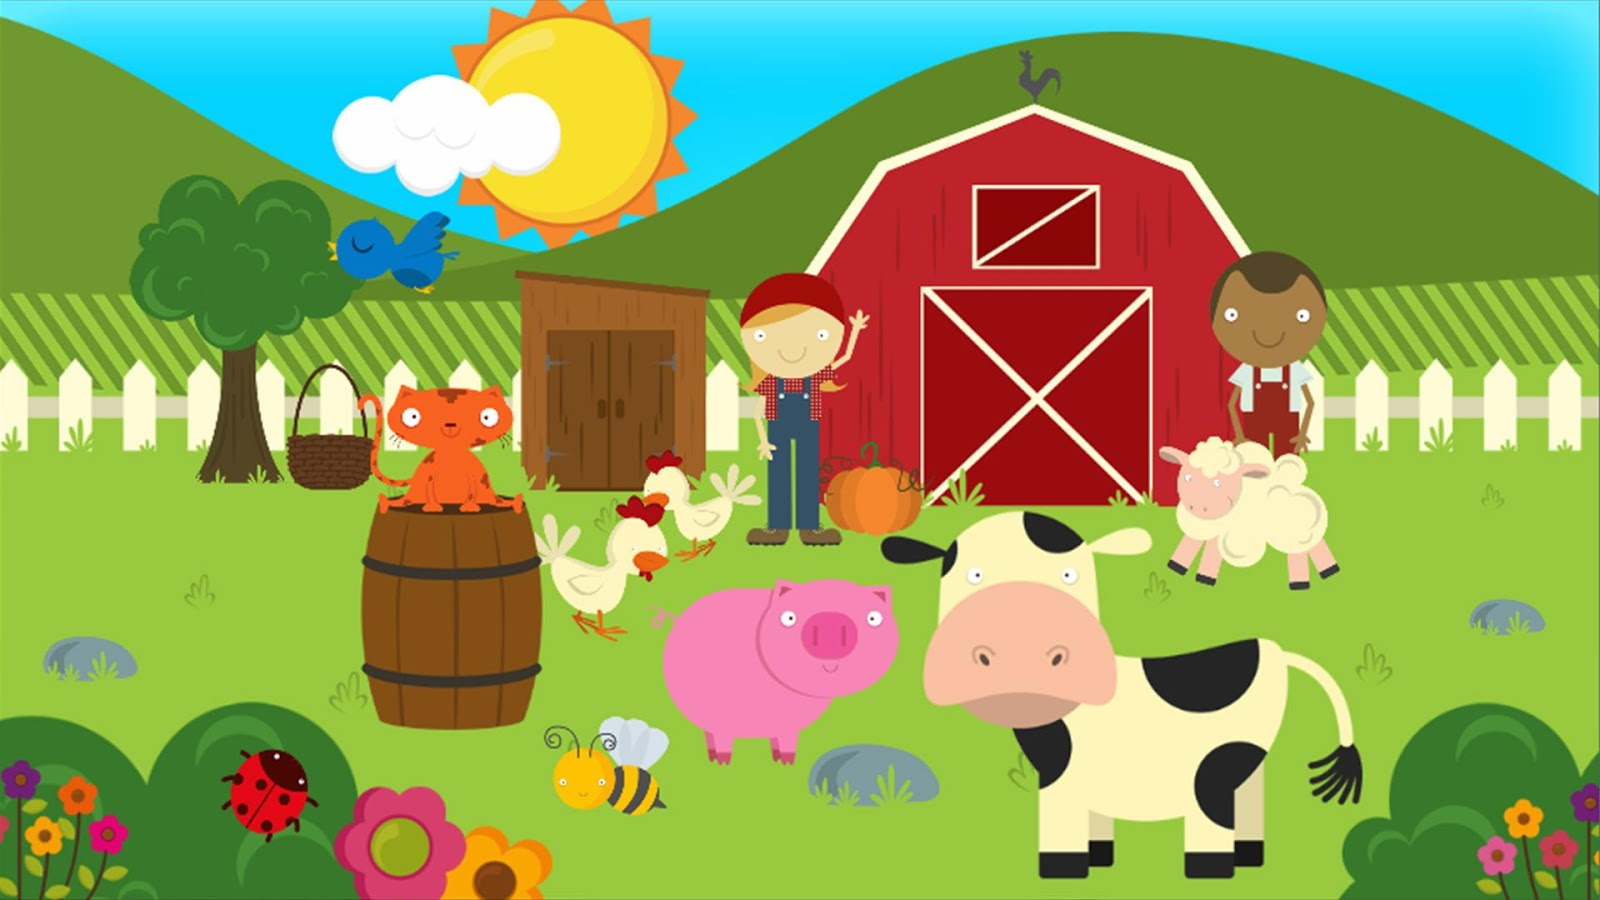 Farm Animal Wall Stickers Farm Games Animal Games For Kids Puzzles For Kids